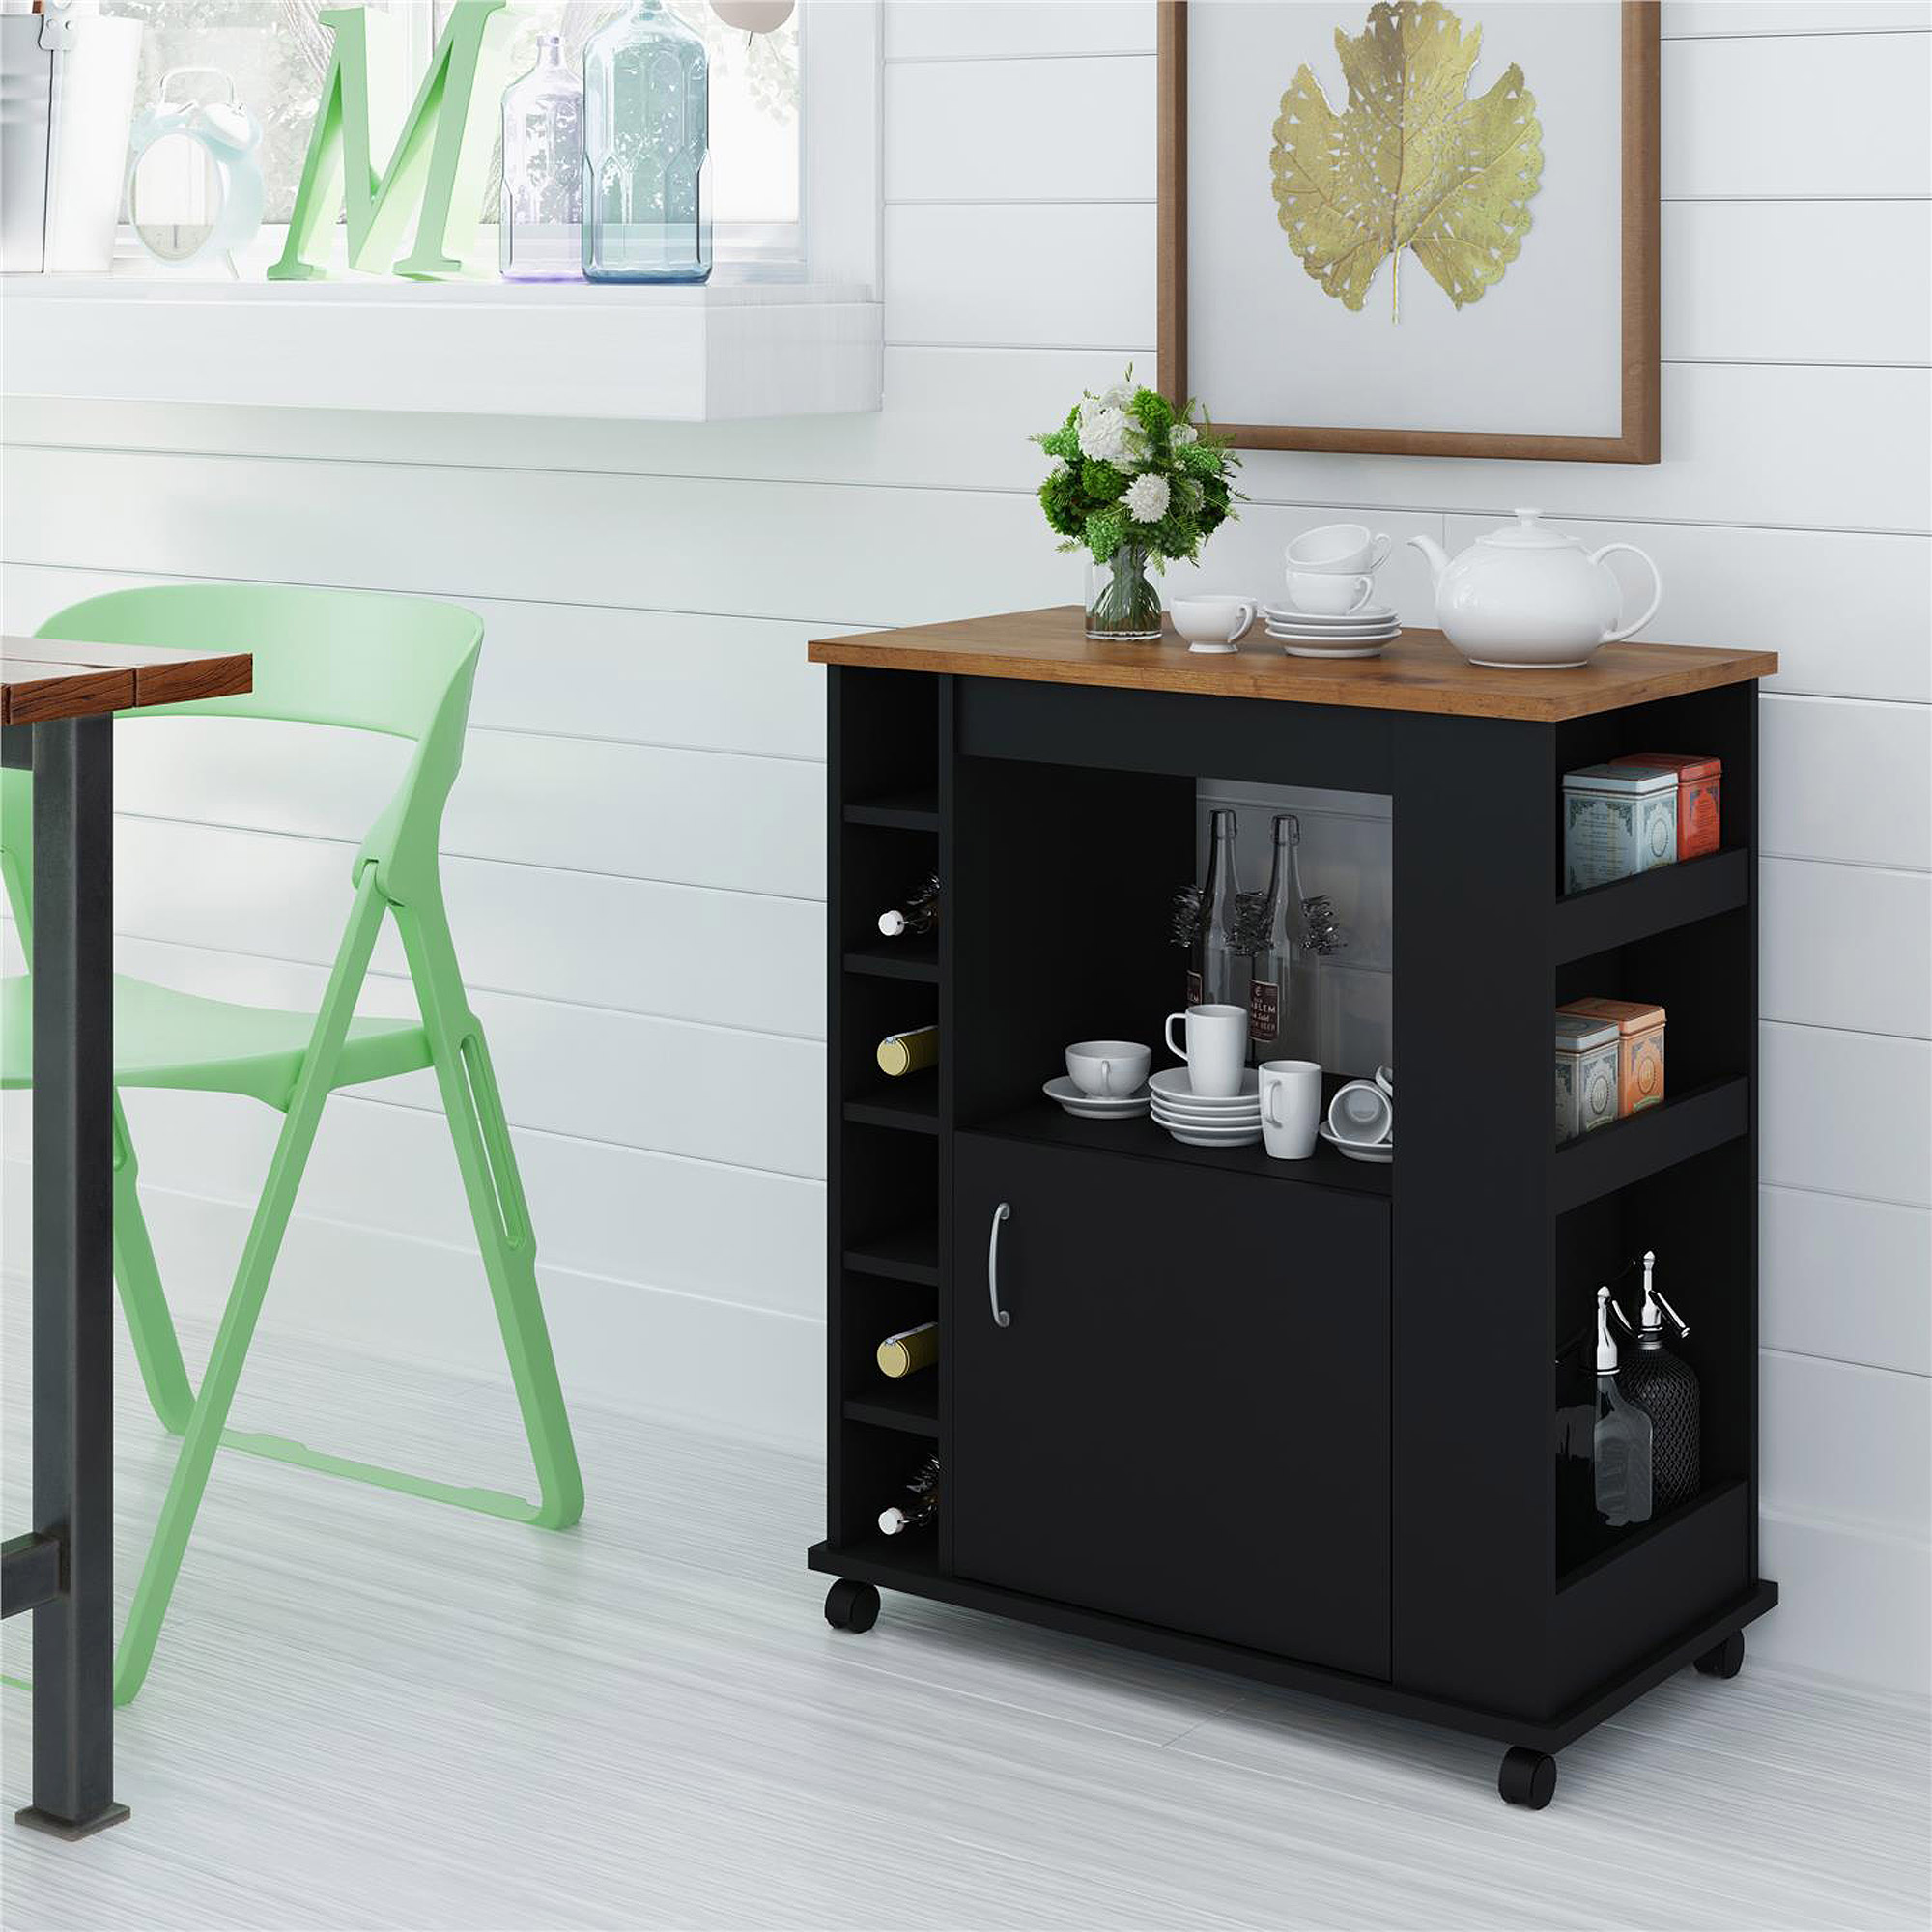 Finding the perfect kitchen cart